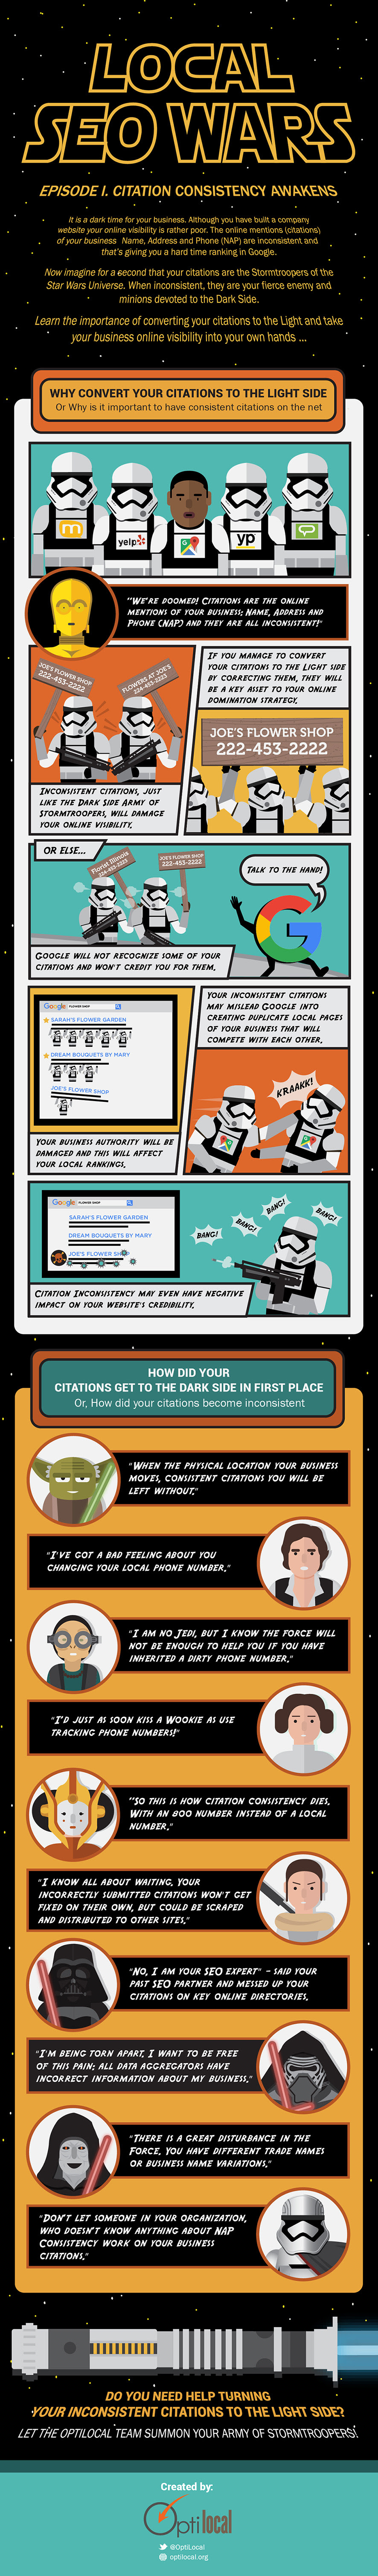 Local Citations Explained With Star Wars Characters: The Local Seo Wars Infographic